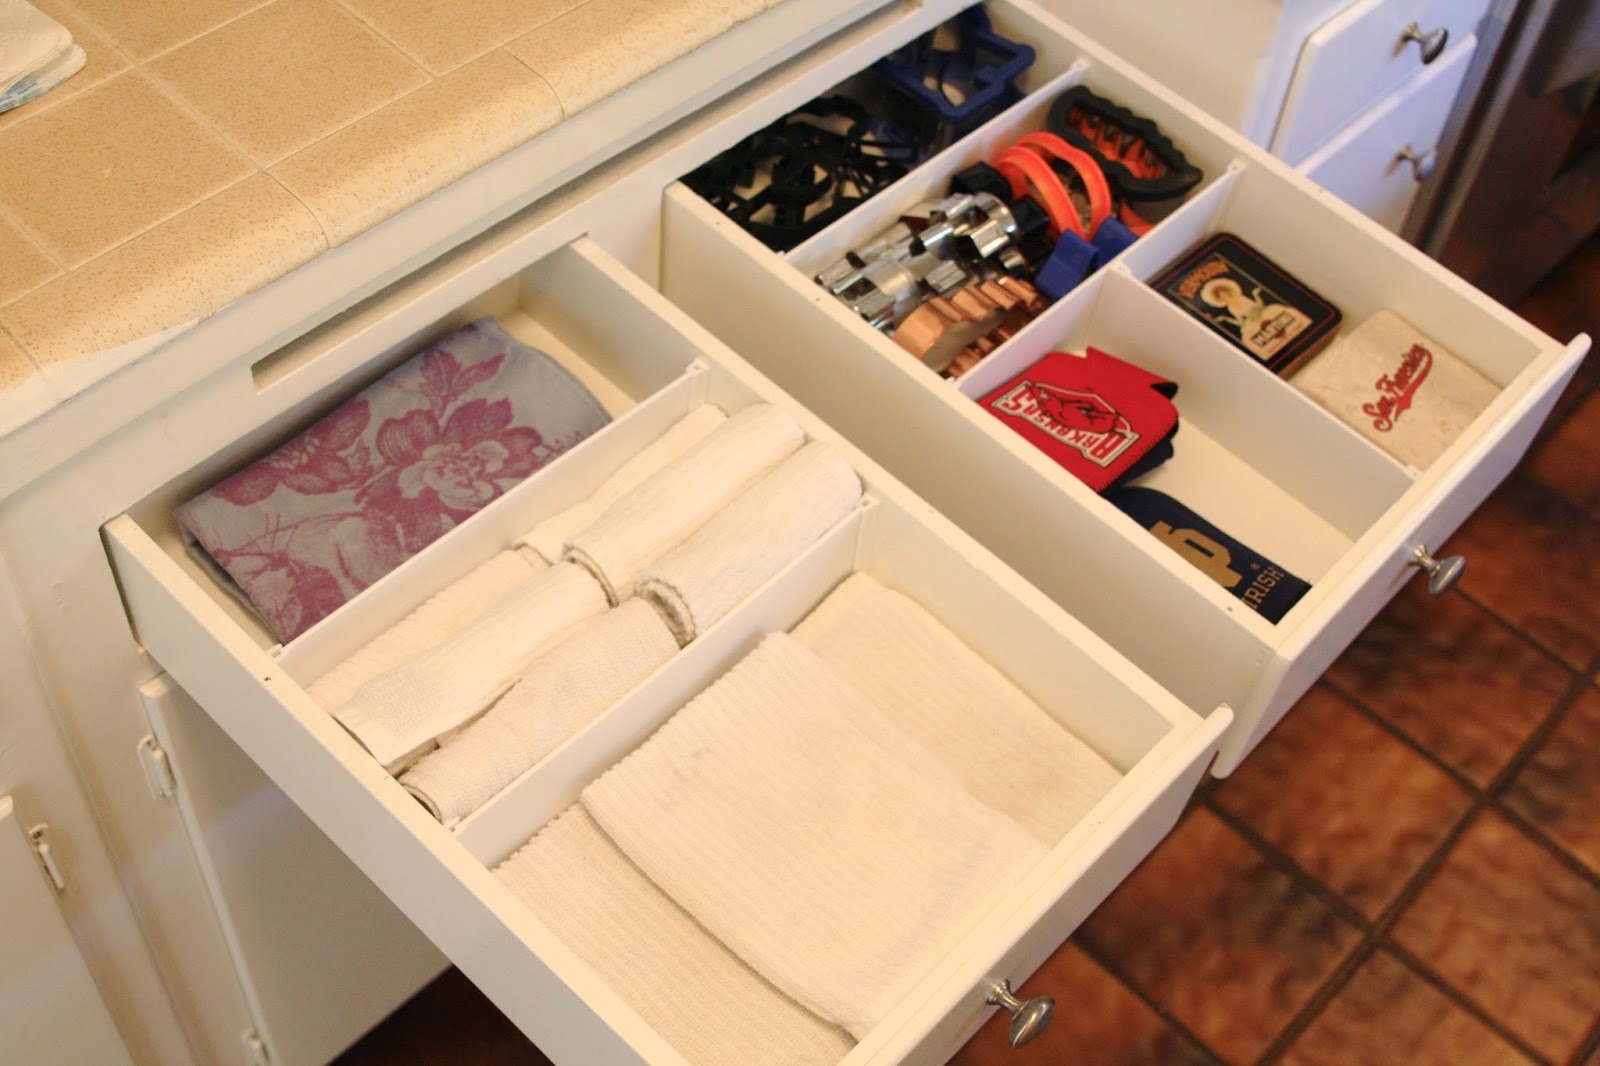 Now, here are my newly customized kitchen drawers…